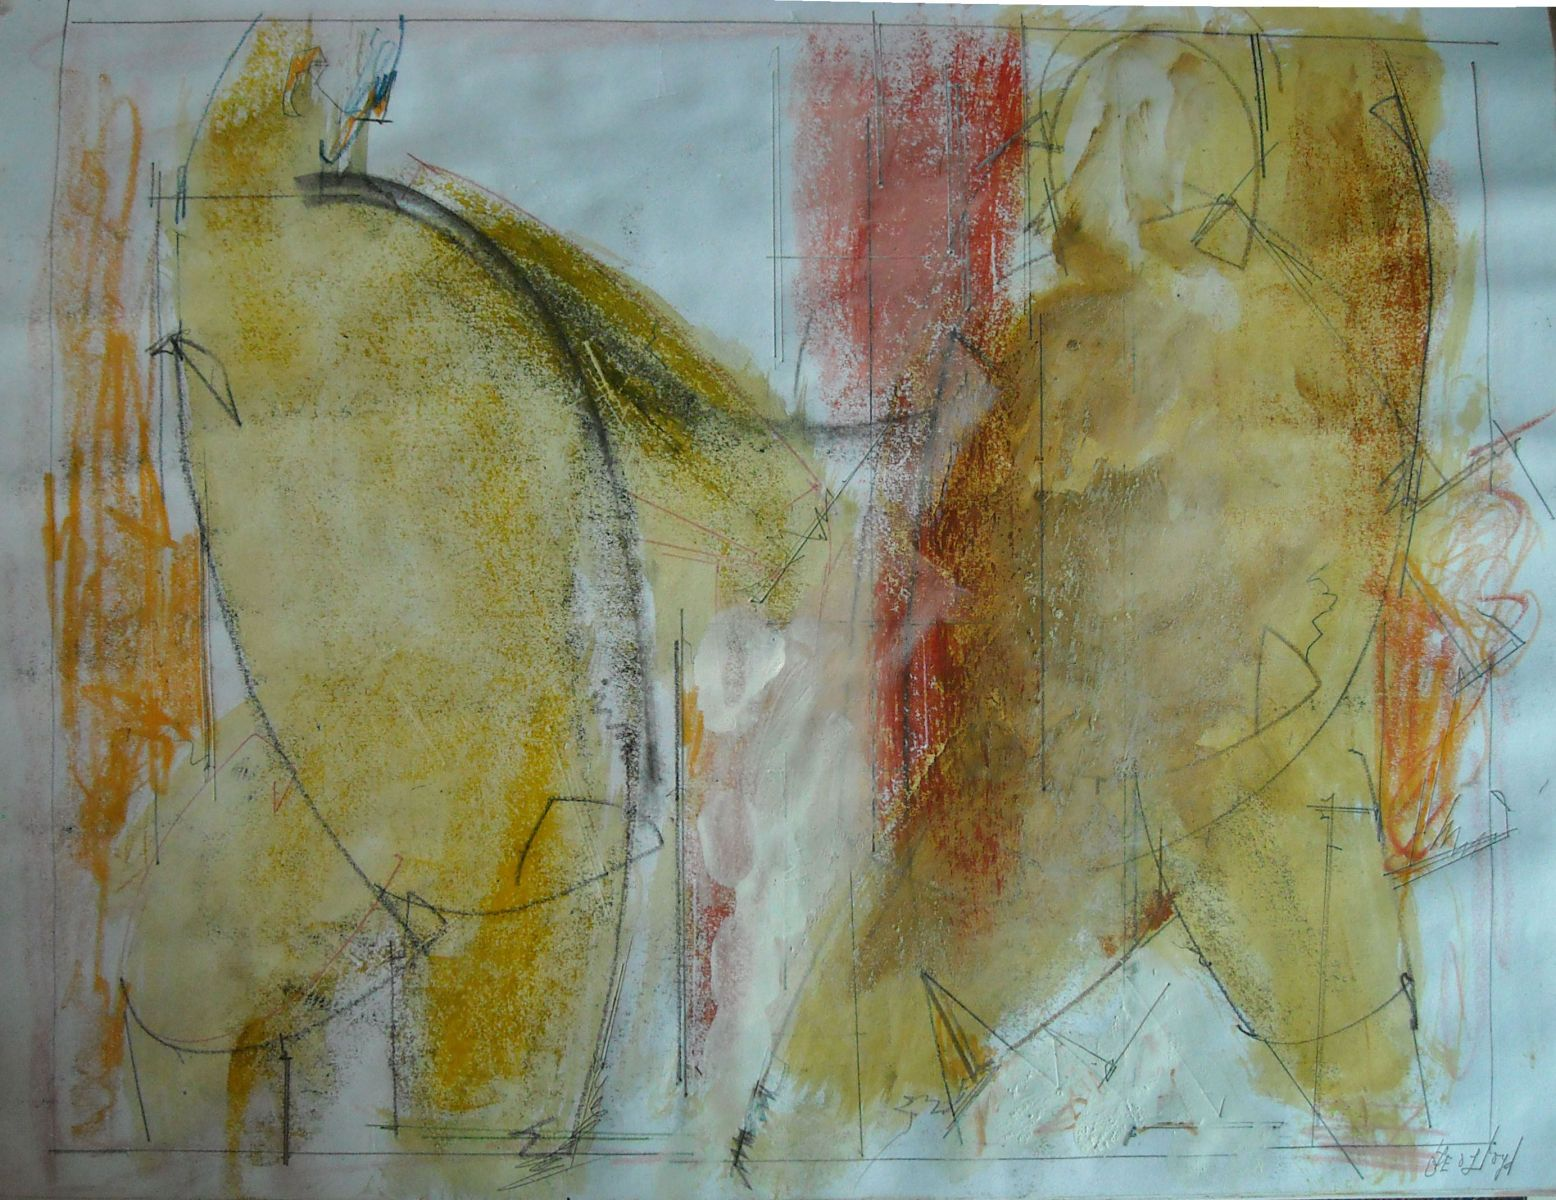 TWO FIGURES   2013